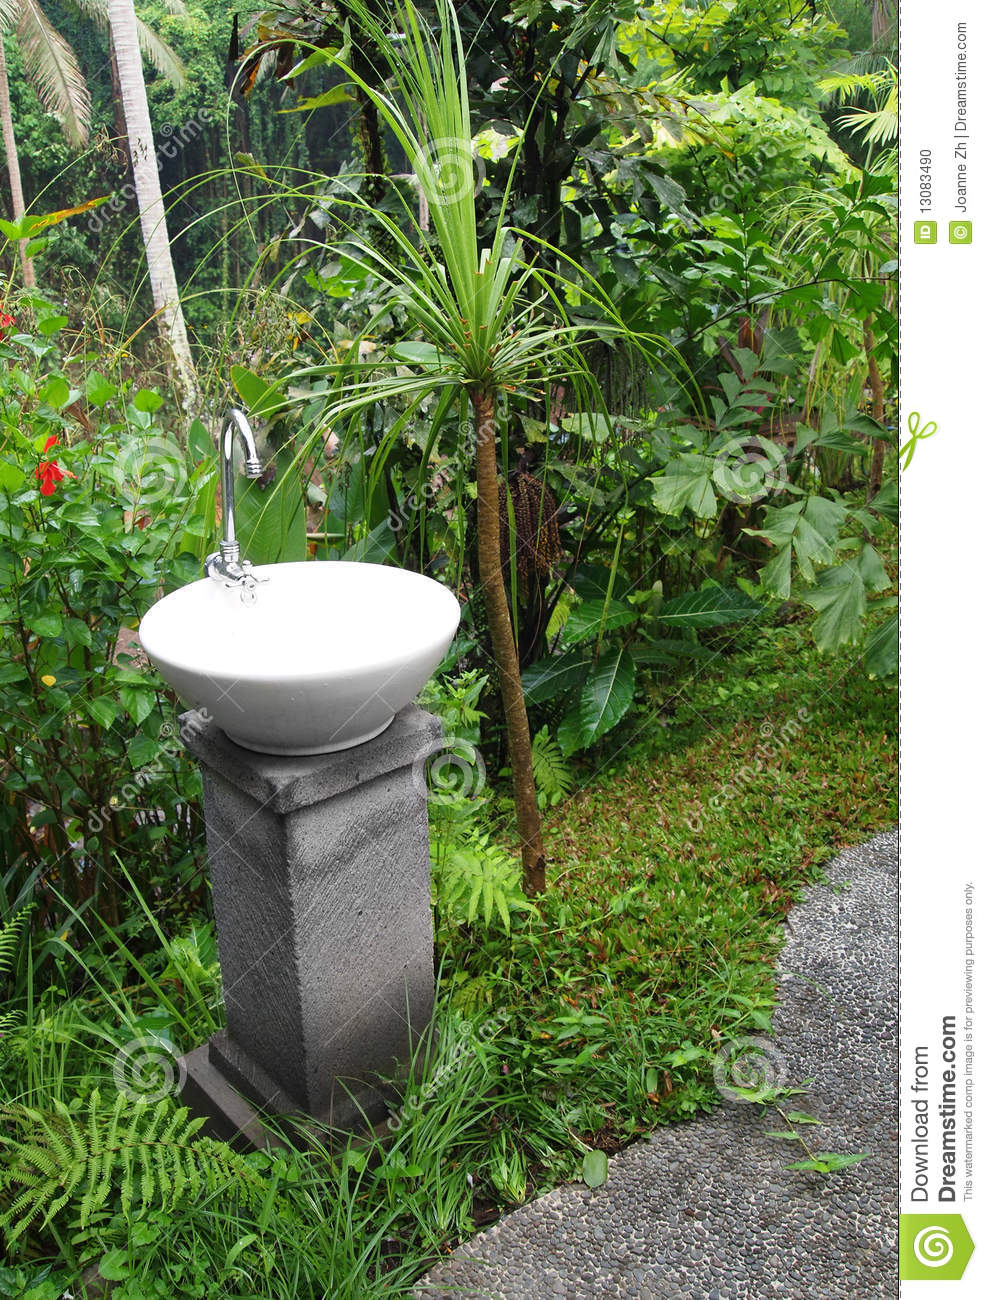 Wash Basin With Tap, Outdoor Garden Stock Photo - Image: 13083490